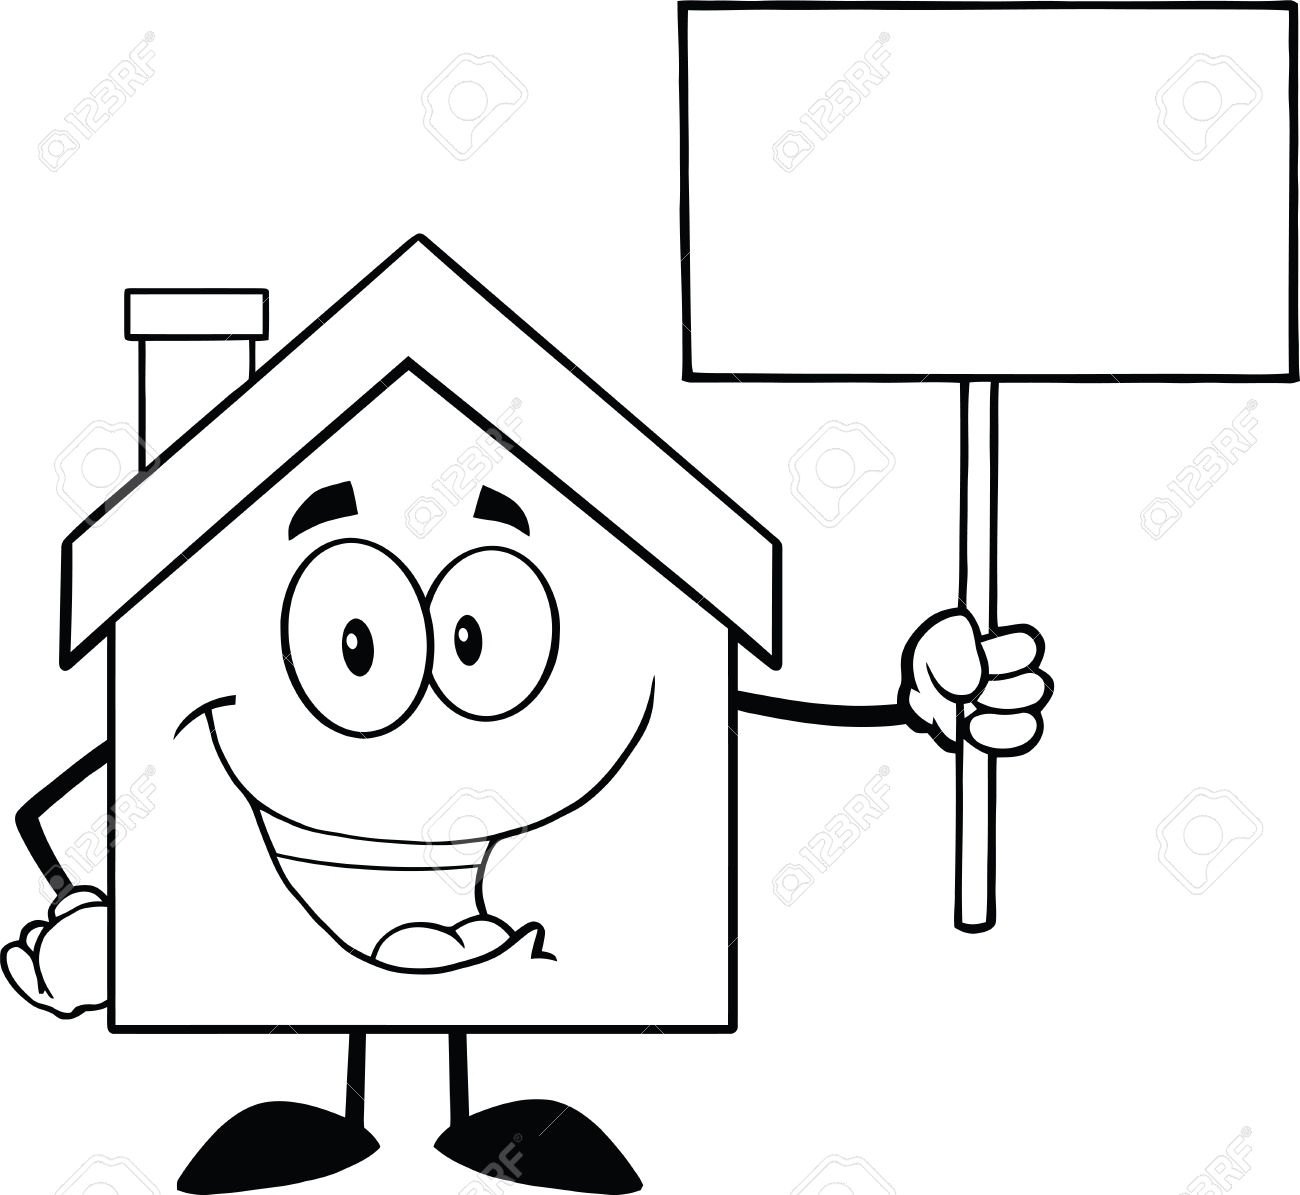 1300x1195 Cartoon Drawing Of The White House Black And White House Cartoon